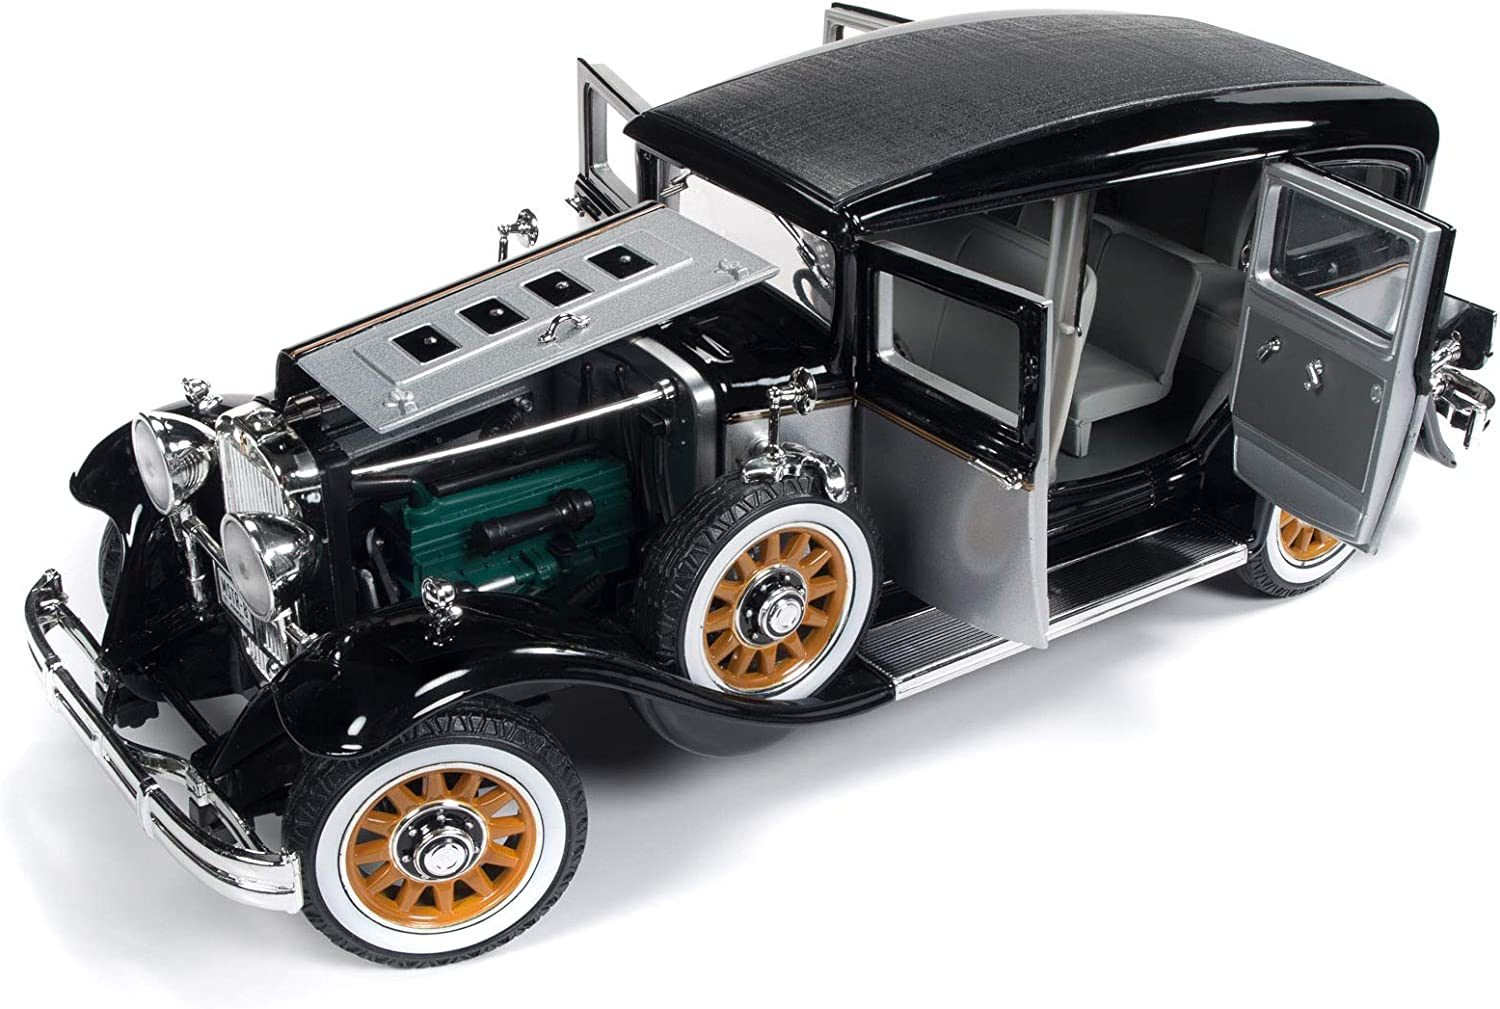 1931 Peerless Master 8 Sedan Black and Silver Limited Edition to 1,500 Pieces Worldwide 1 18 Diecast Model Car by Autoworld AW252